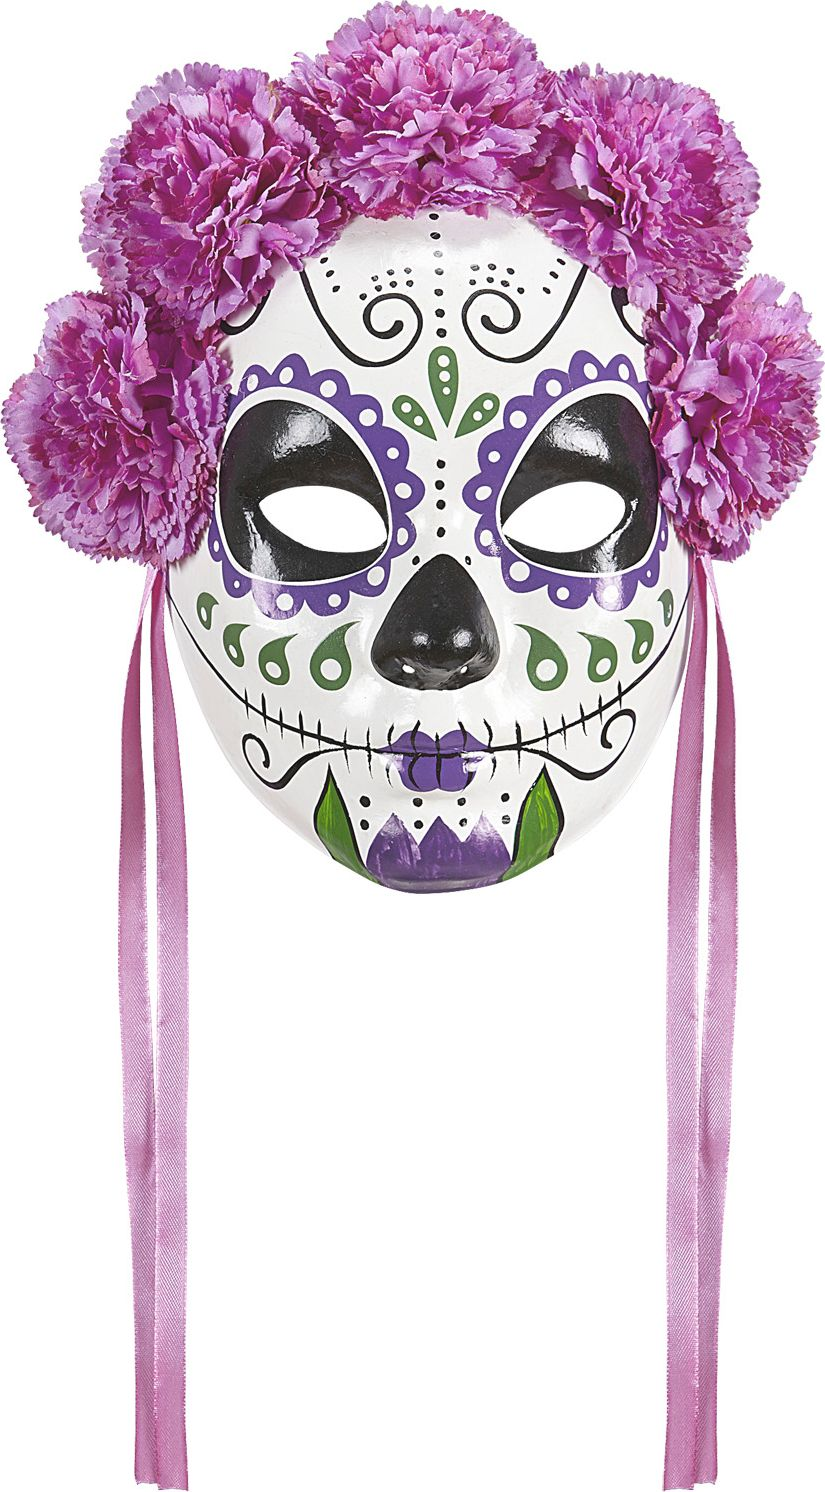 Day of the dead masker met paarse rozen